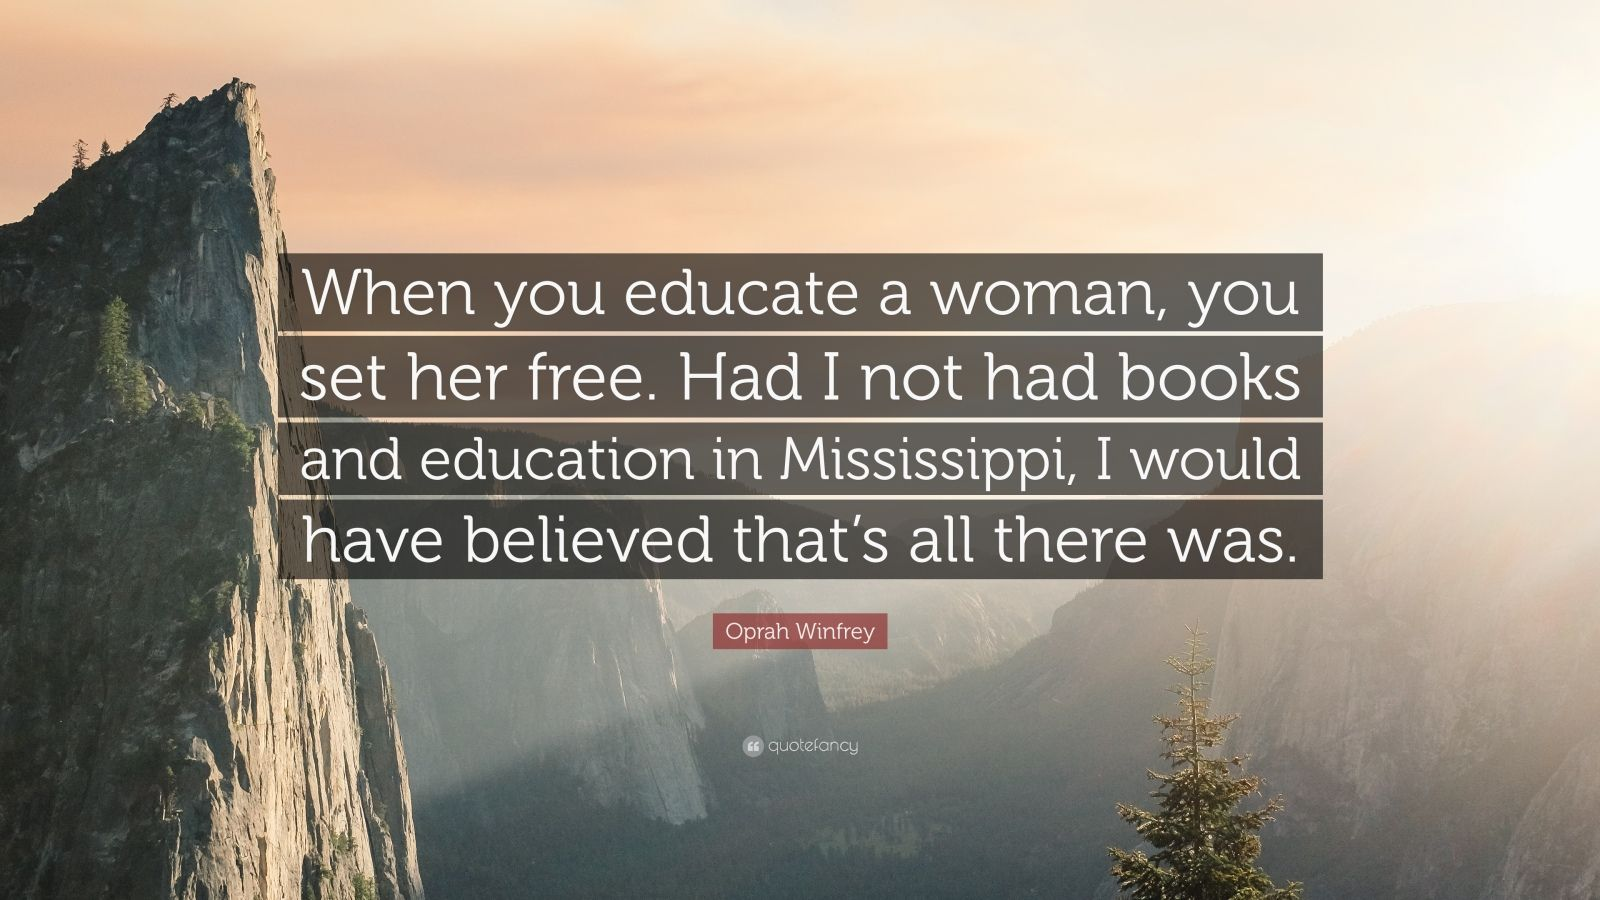 """Oprah Winfrey Quote: """"When you educate a woman, you set her free. Had I not had books and education in Mississippi, I would have believed that's all there was."""""""